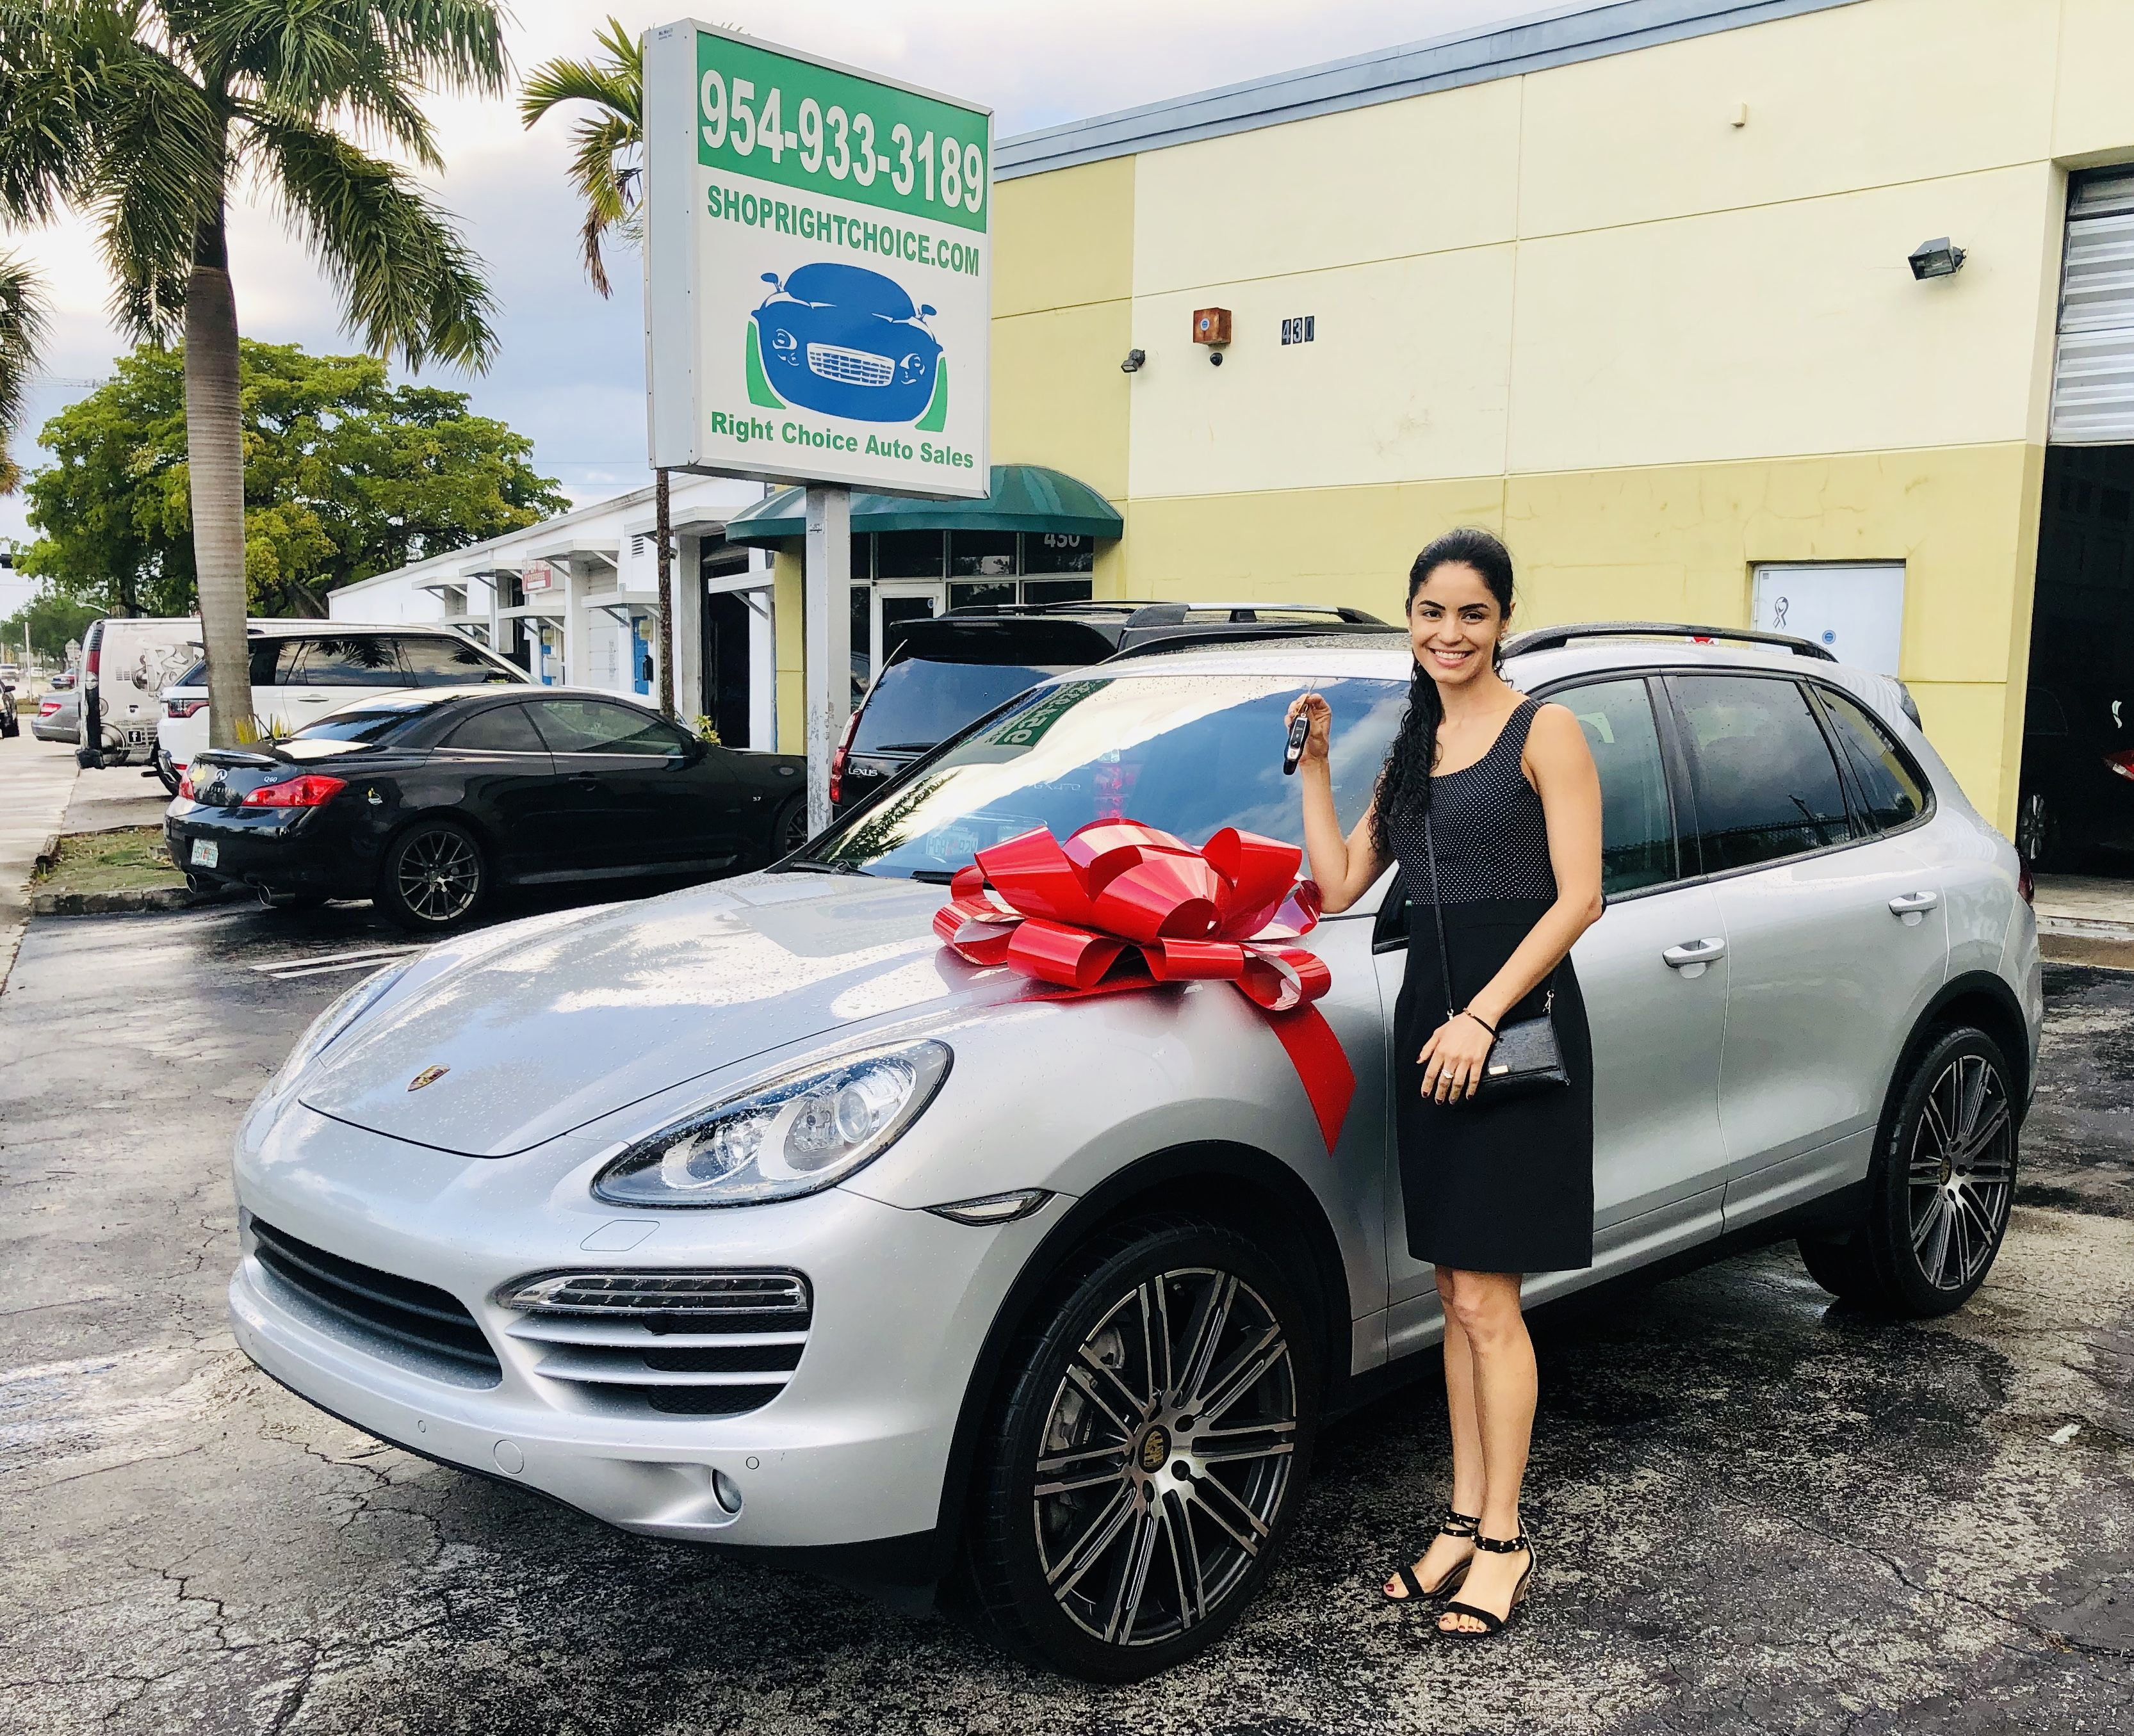 2013 Porsche Cayenne At Right Choice Auto Sales Used Luxury Cars Pompano Beach Cars For Sale